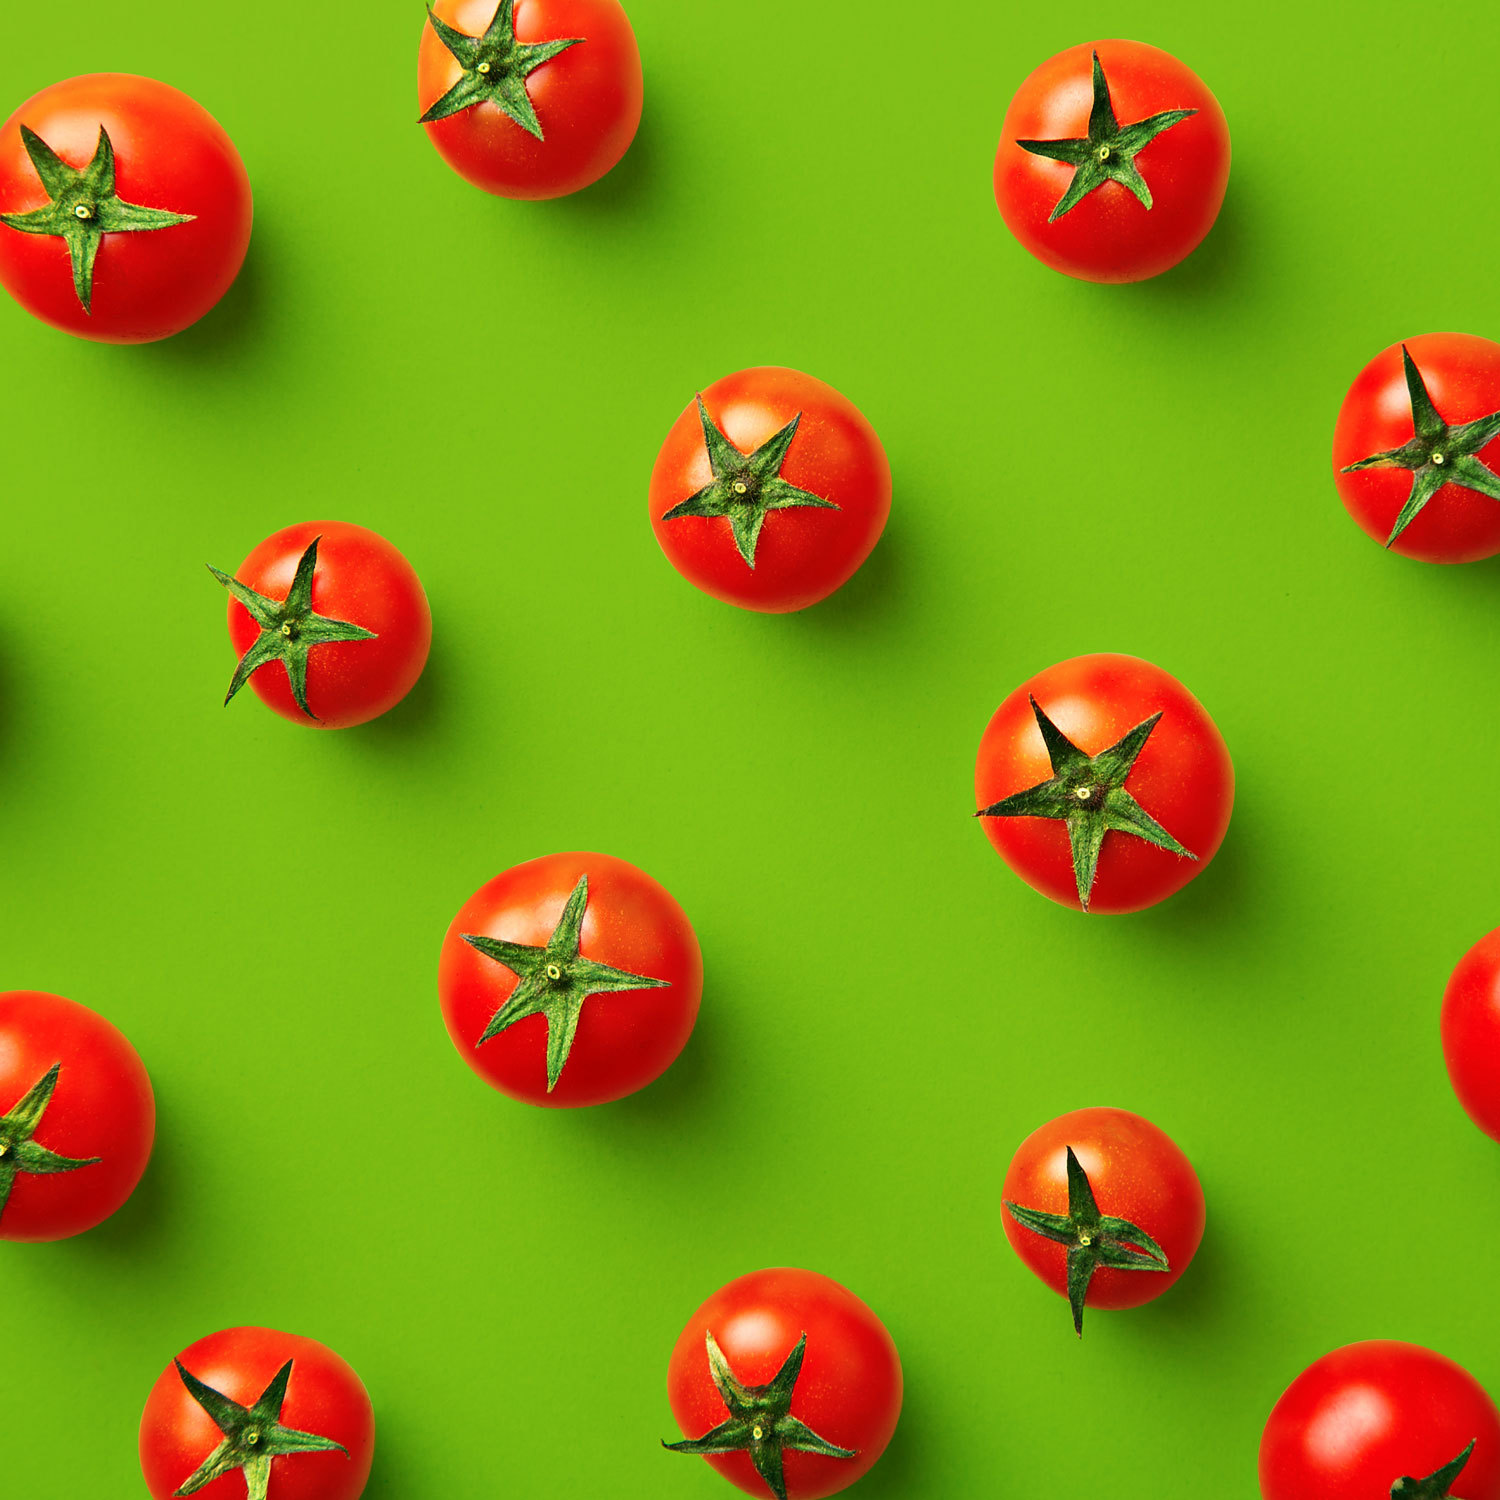 Red tomatoes on a green background